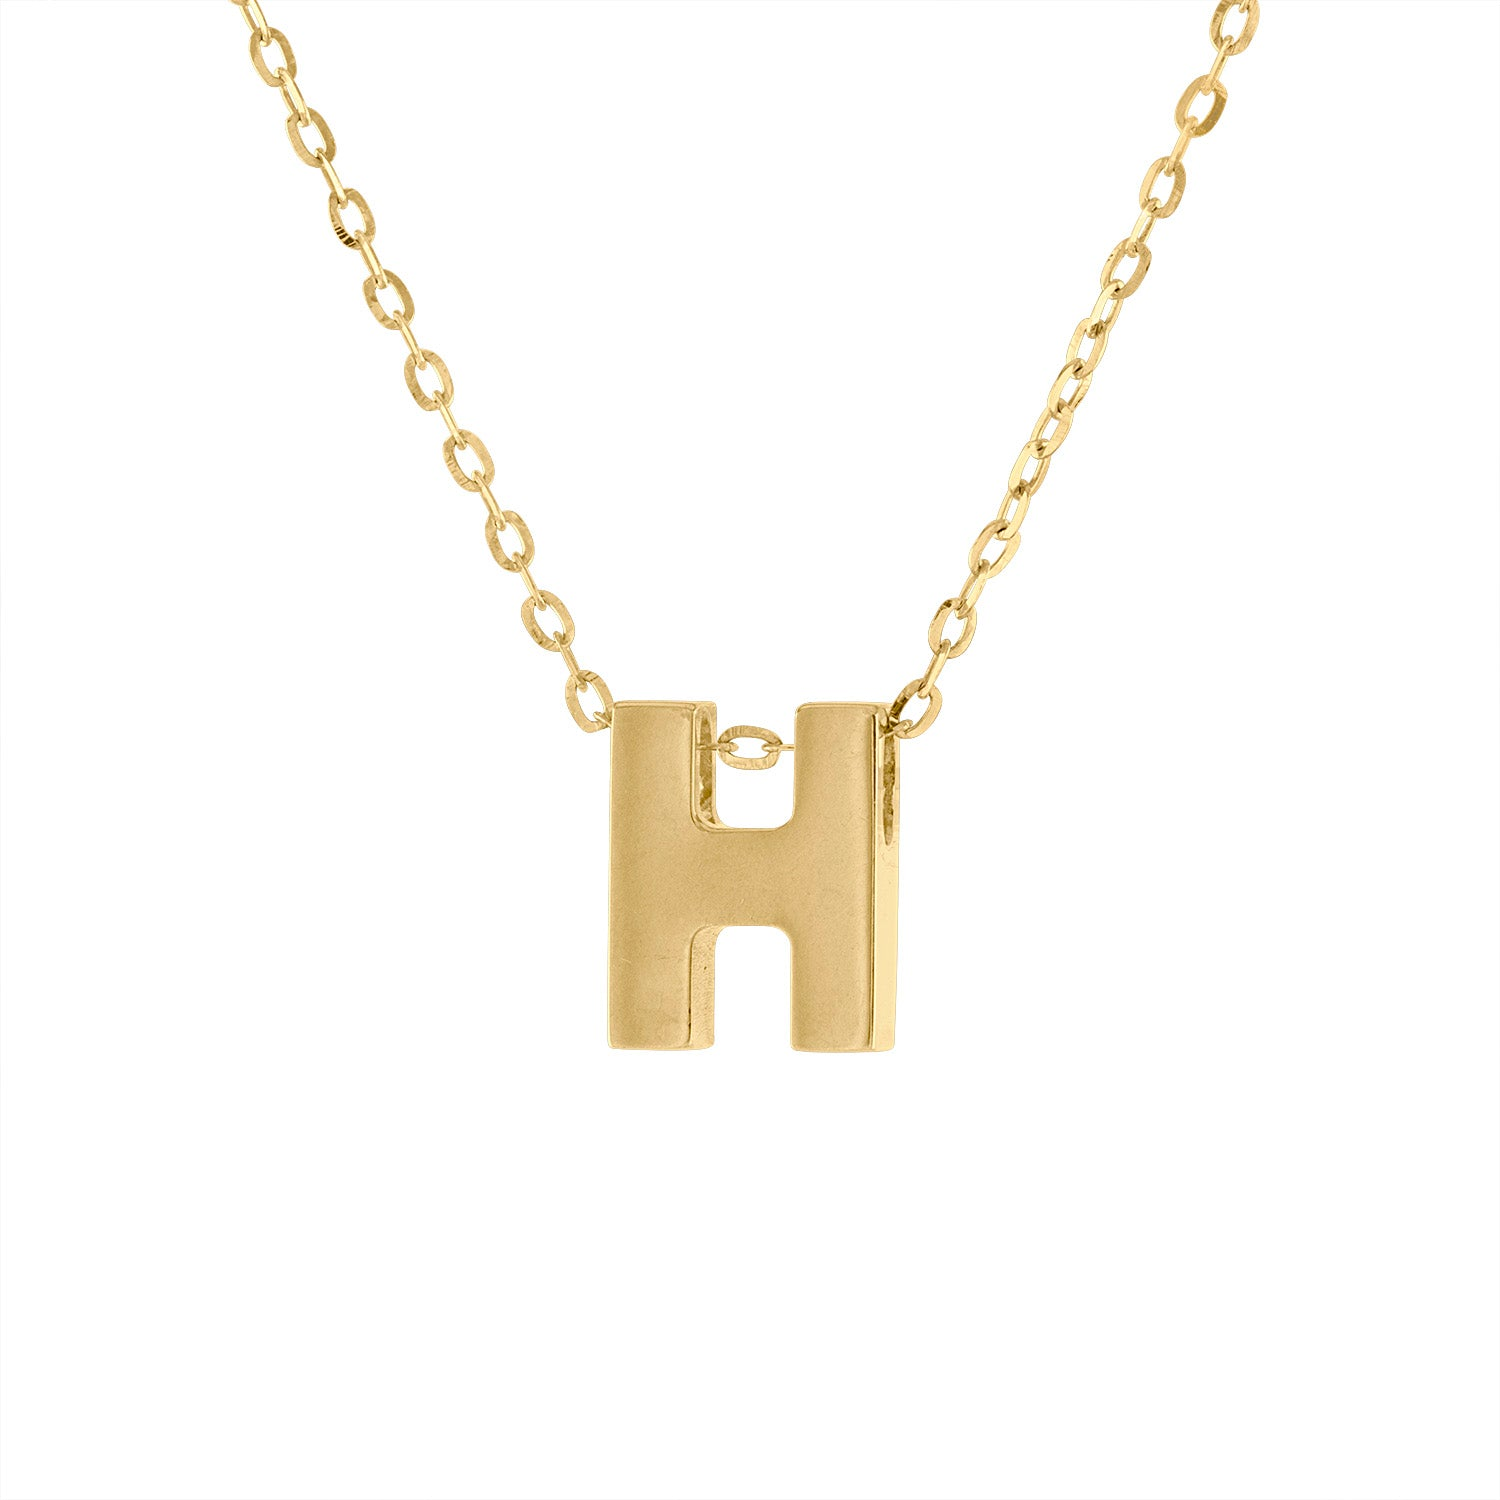 14k Yellow Gold plain initial H necklace